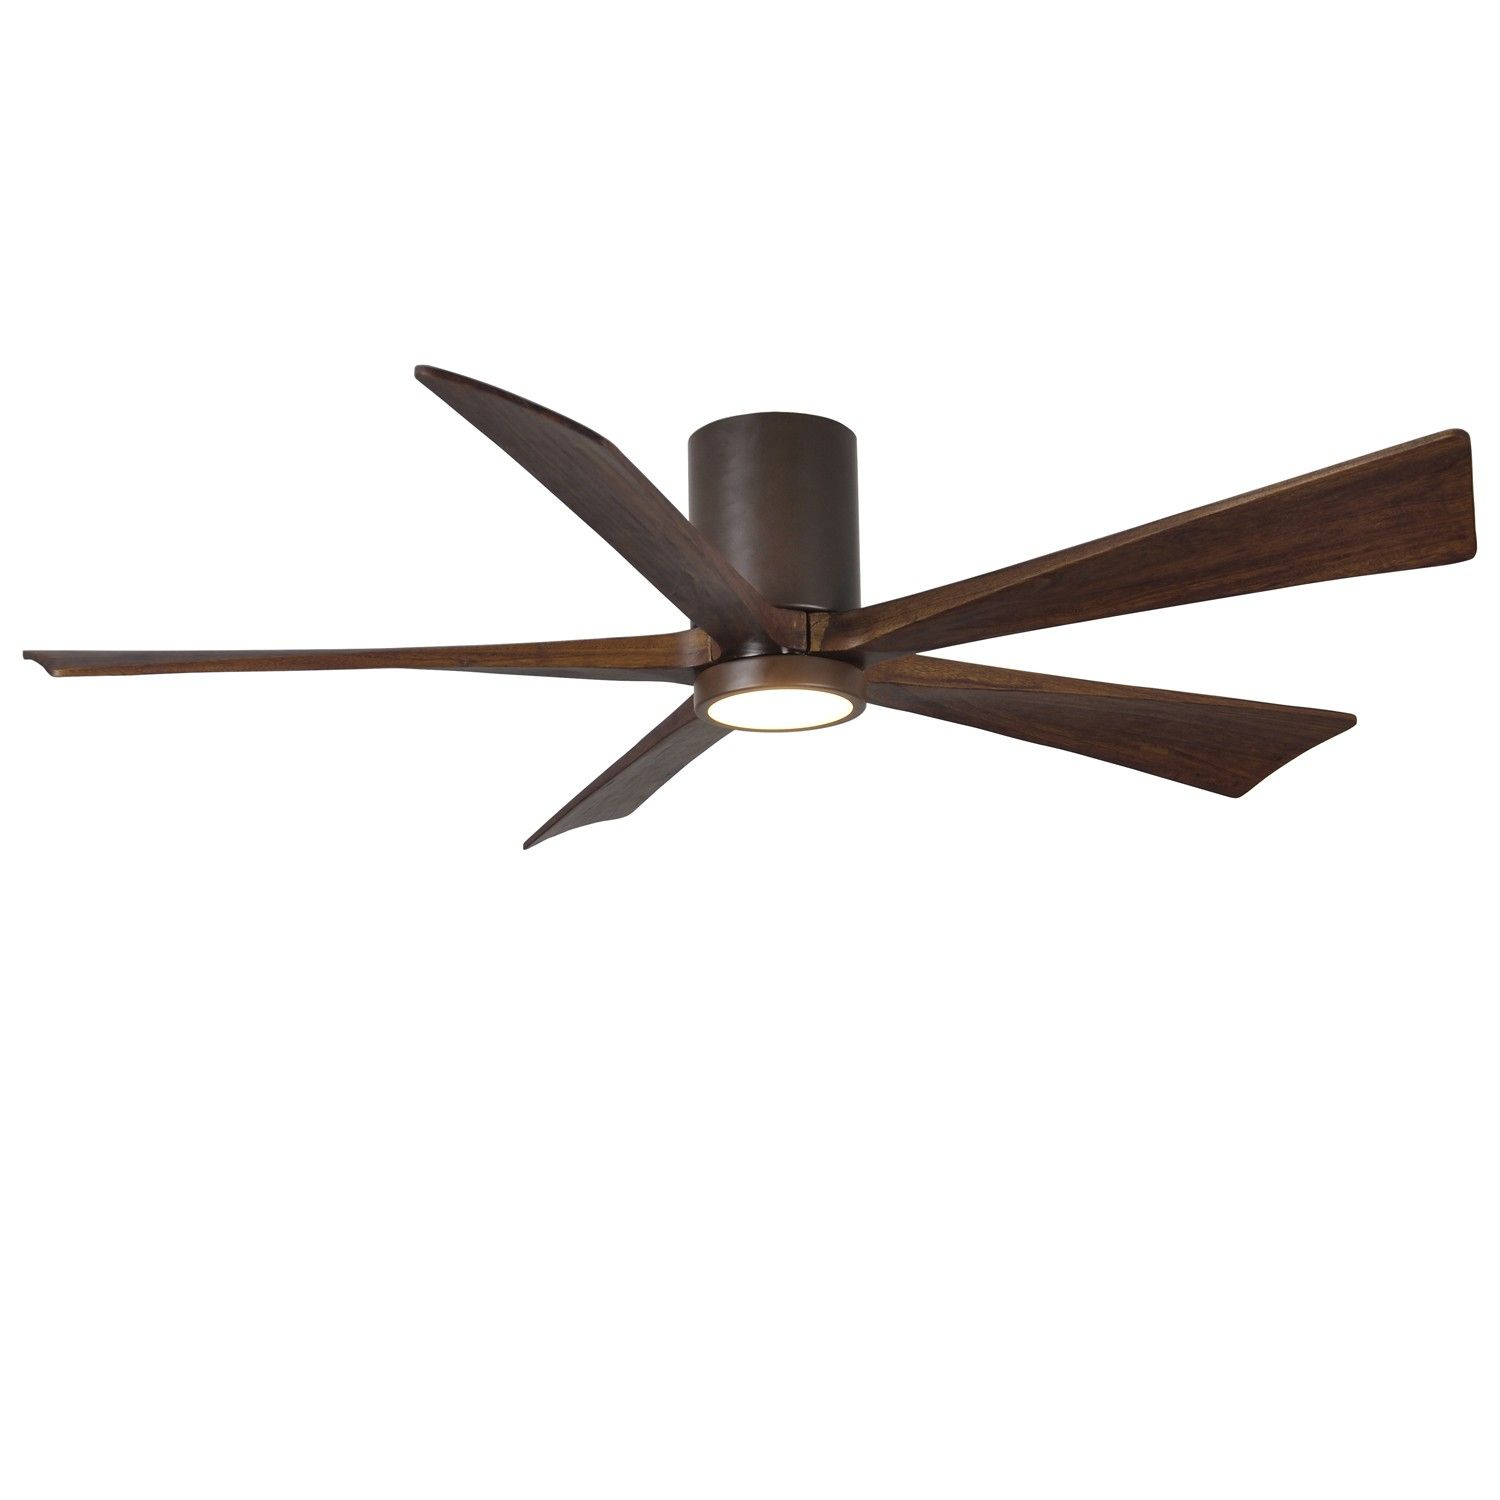 Irene Hugger Ceiling Fan With Light By Matthews Fan Company Ir5hlk Tb Wa 60 Ceiling Fan With Light Hugger Ceiling Fan Fan Light